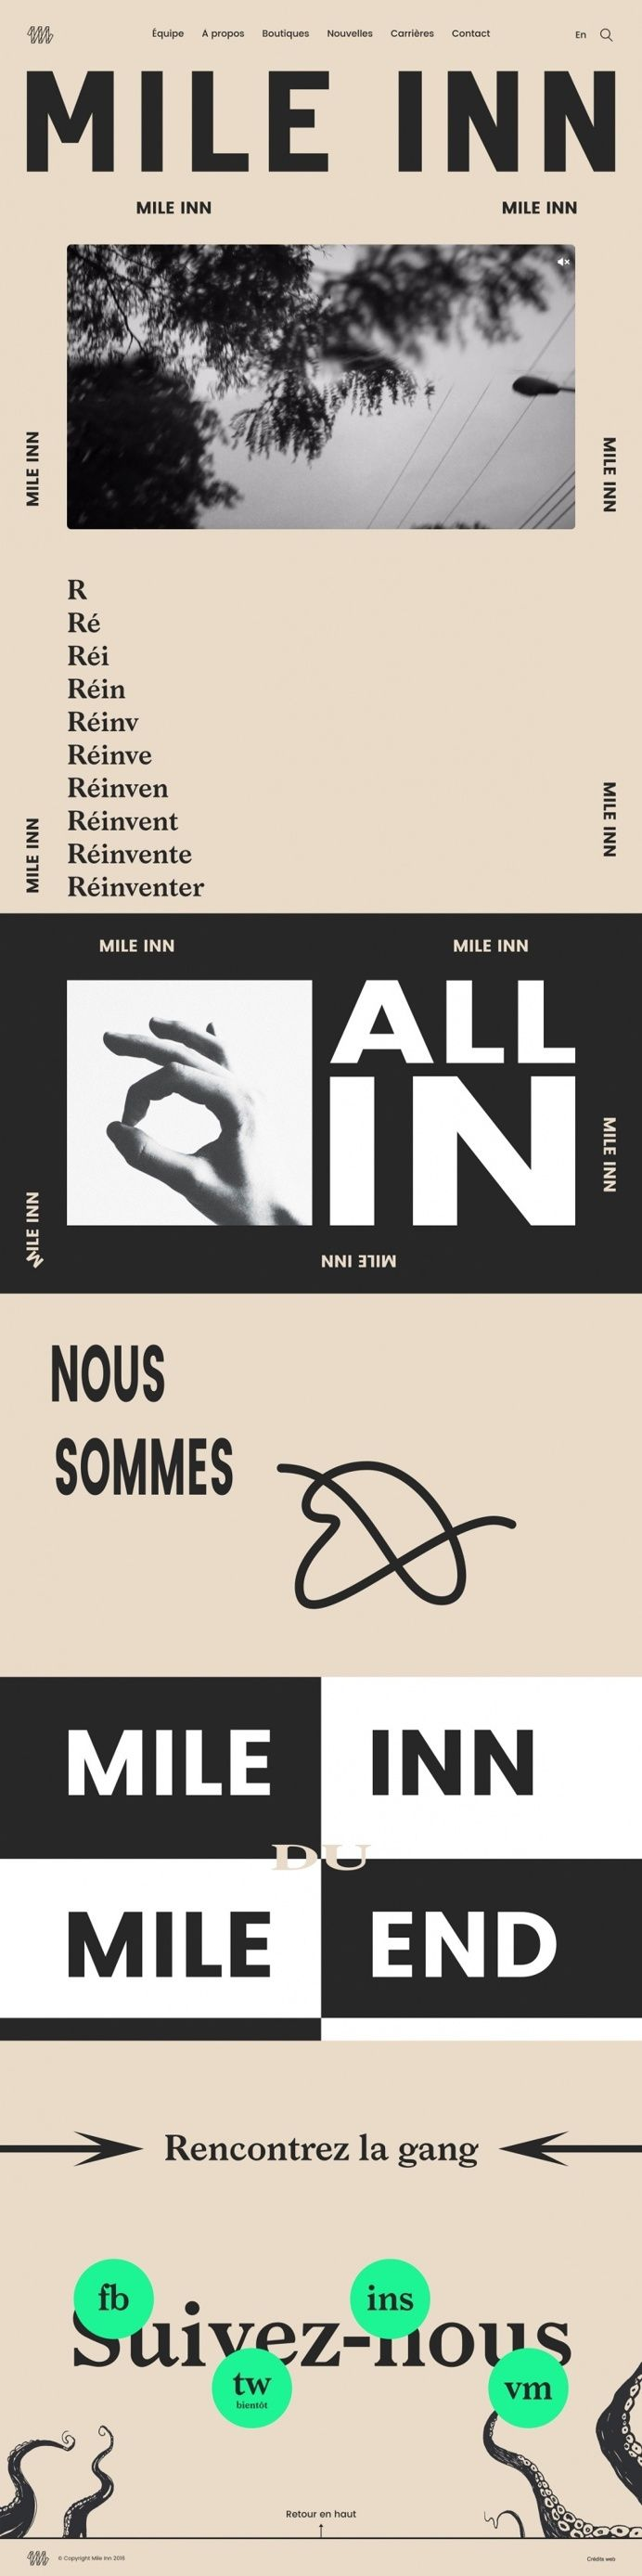 mile inn french francais webdesign website beautiful portfolio modern typography type design award site of the day beauty beautiiful new nic